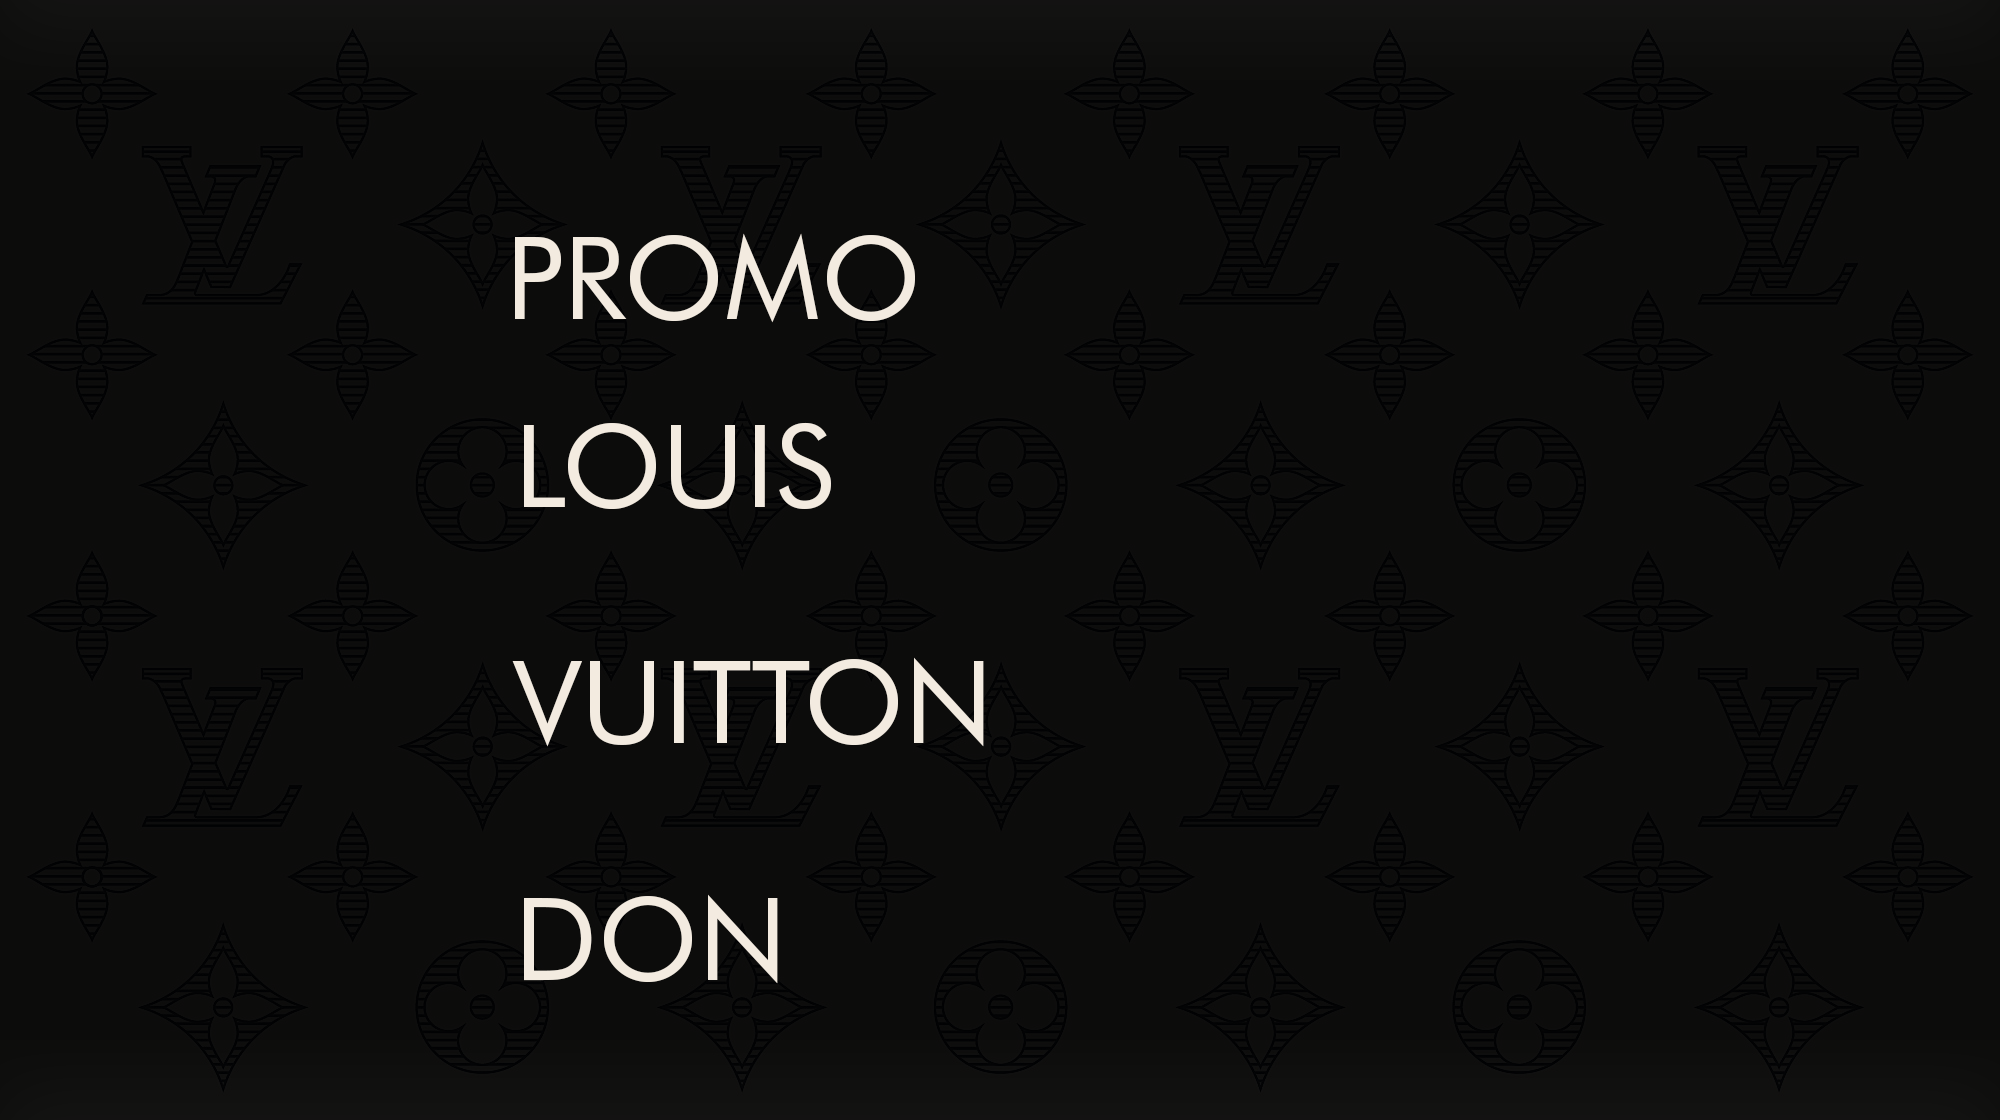 Song Promo YouTube Upload to Louis Vuitton Don 40K+ subs channel